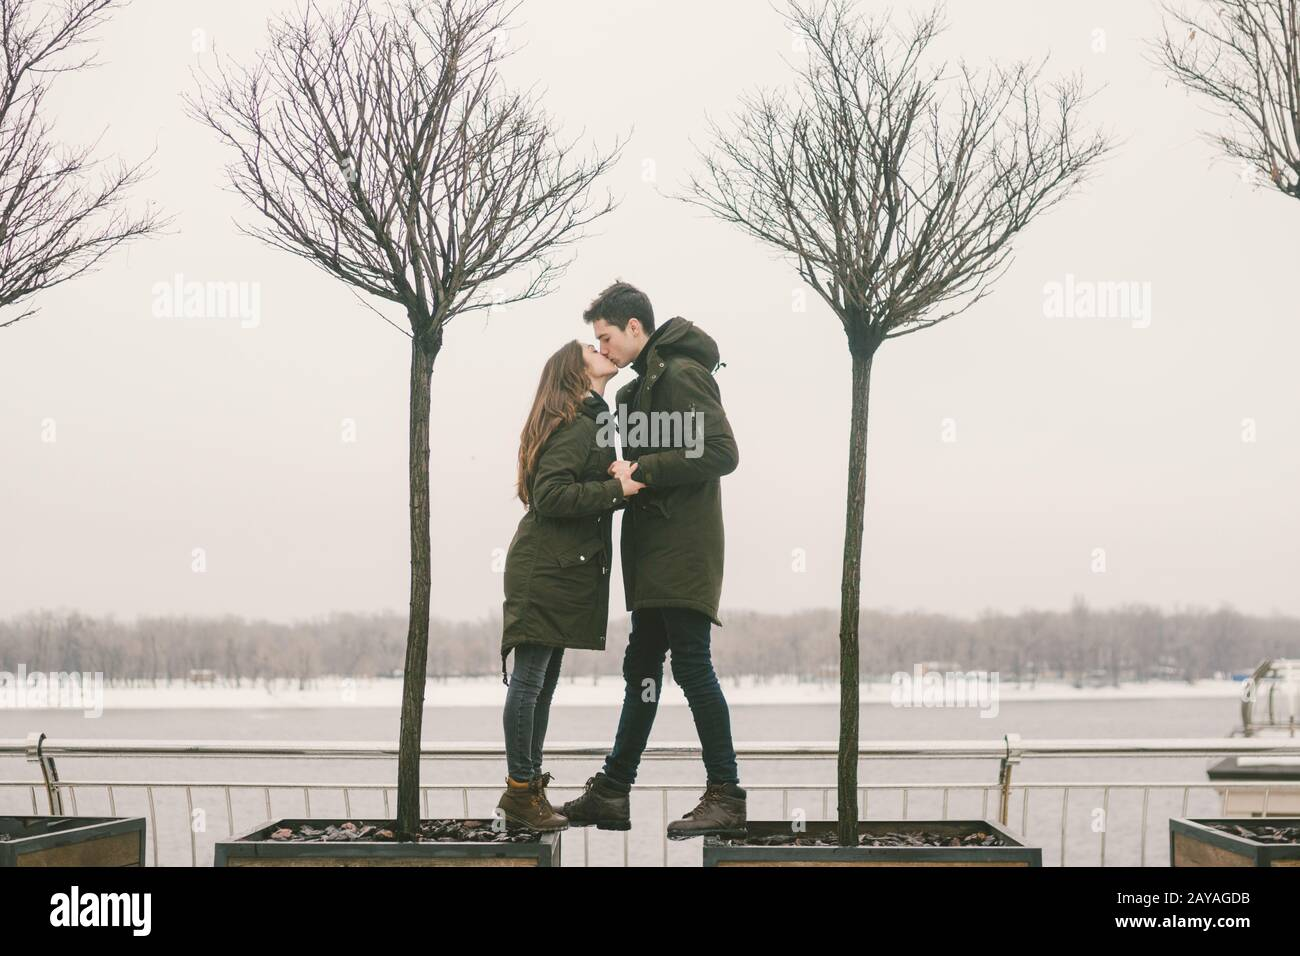 A heterosexual couple young people in love students a man and a Caucasian woman. In winter, in the city square covered with ice, Stock Photo